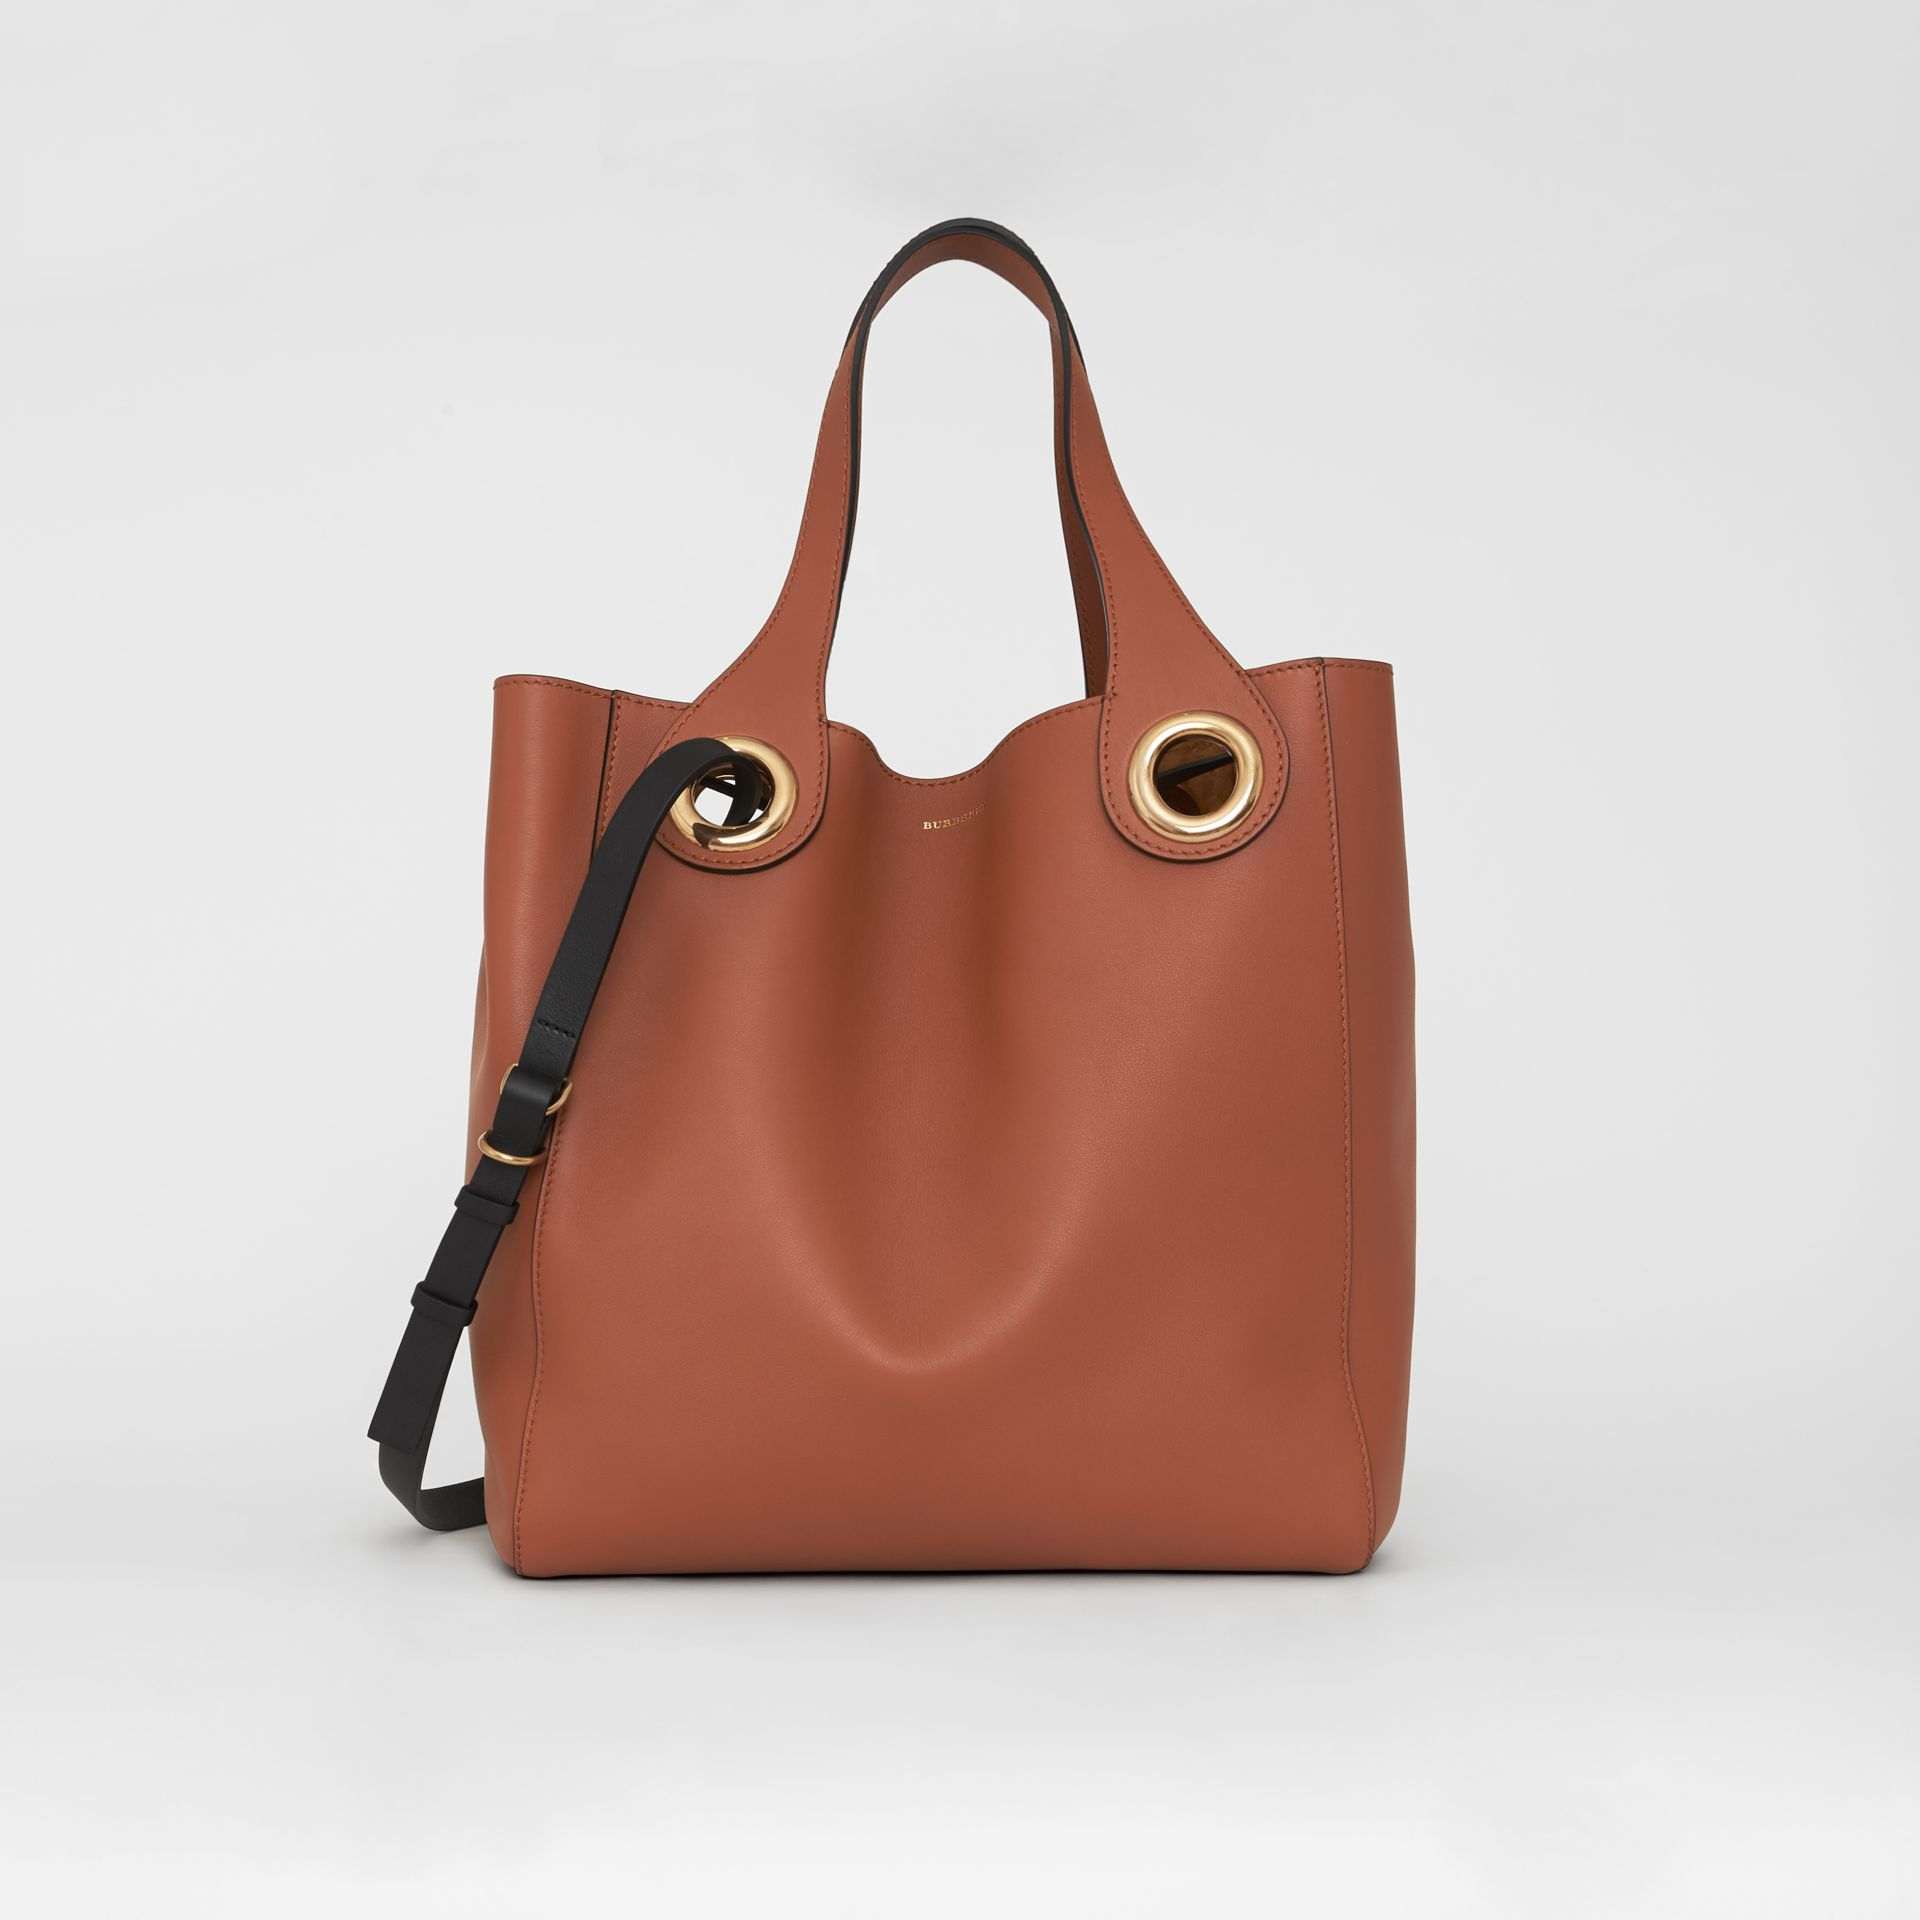 Burberry The Leather Grommet Detail Tote In Tan  b98154710a